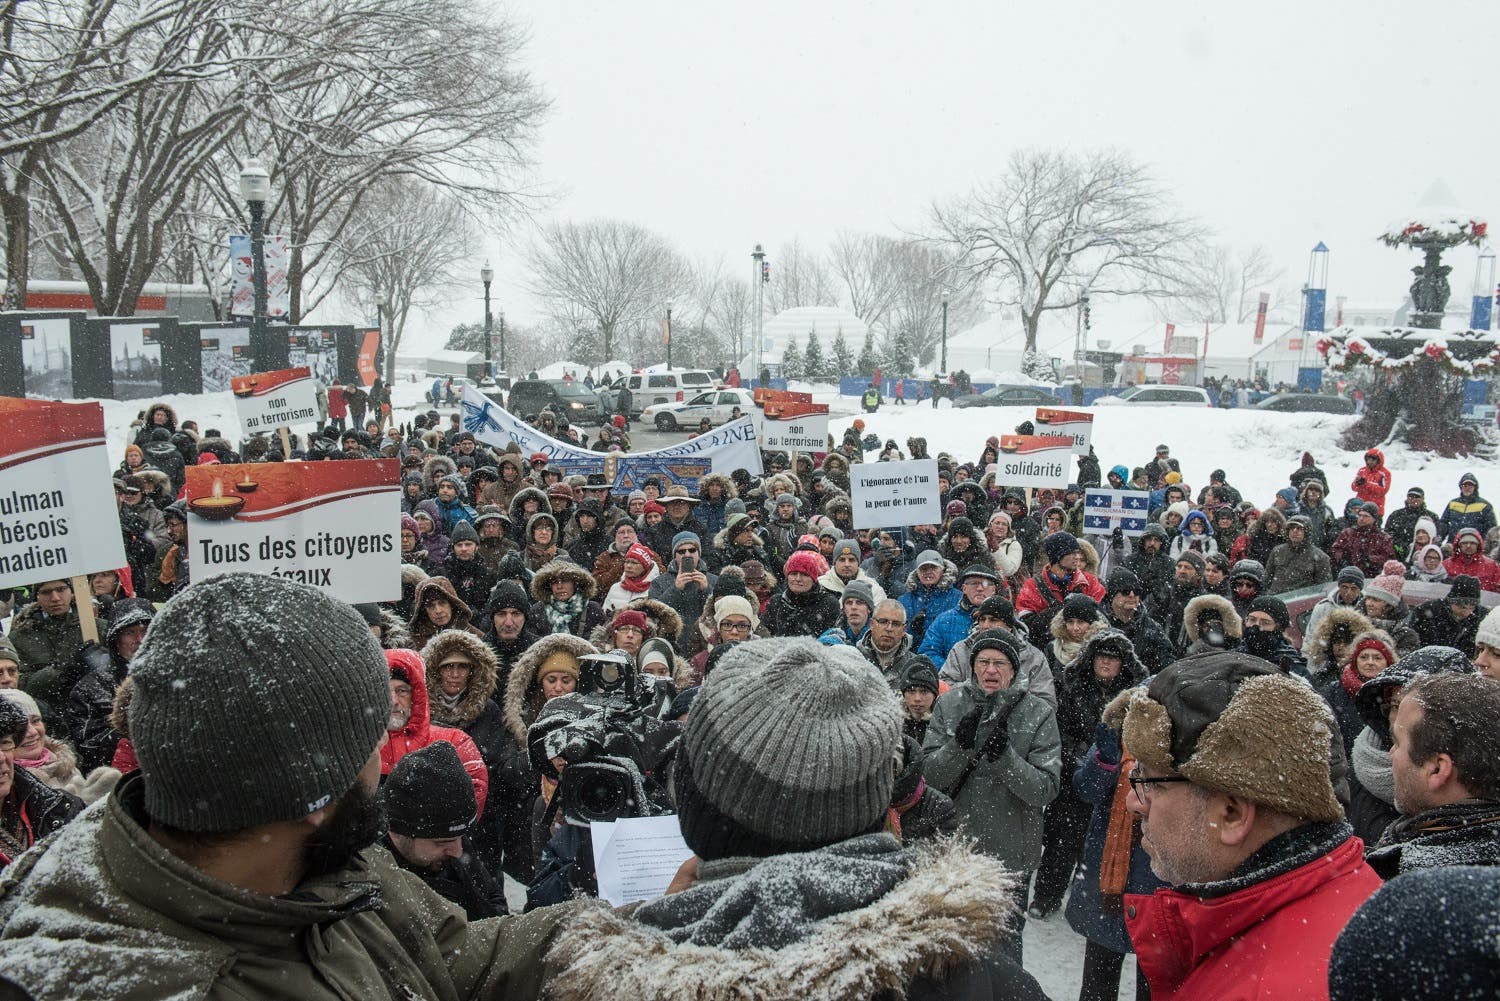 Several hundred people march in solidarity for the victims of the mosque shooting in Quebec City, on February 5, 2017. (AFP)